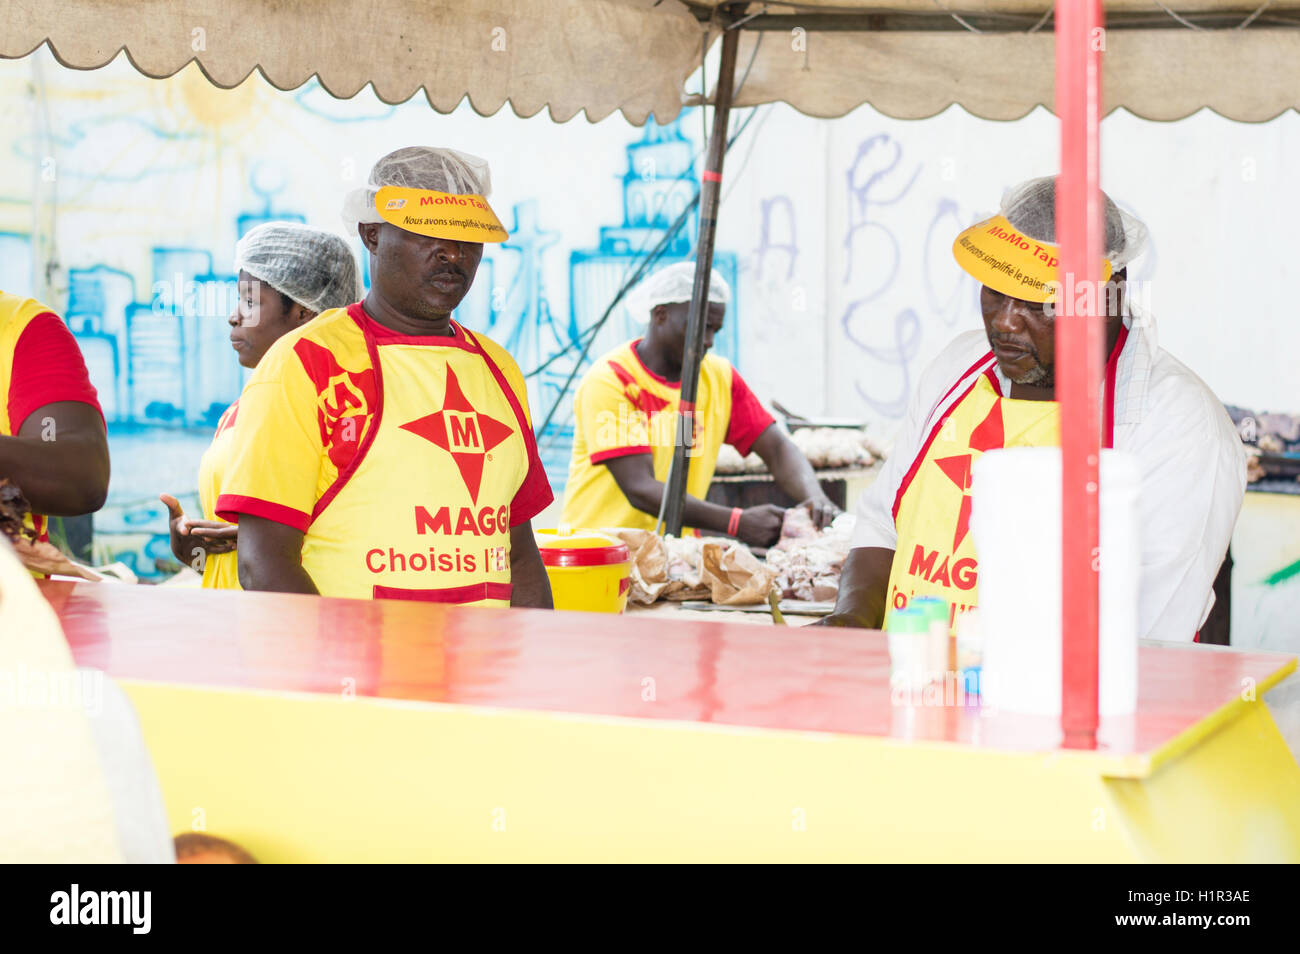 Abidjan, Ivory Coast, September 11 2016: barbecue festival in Abidjan with  people dressed in  red and yellow. - Stock Image